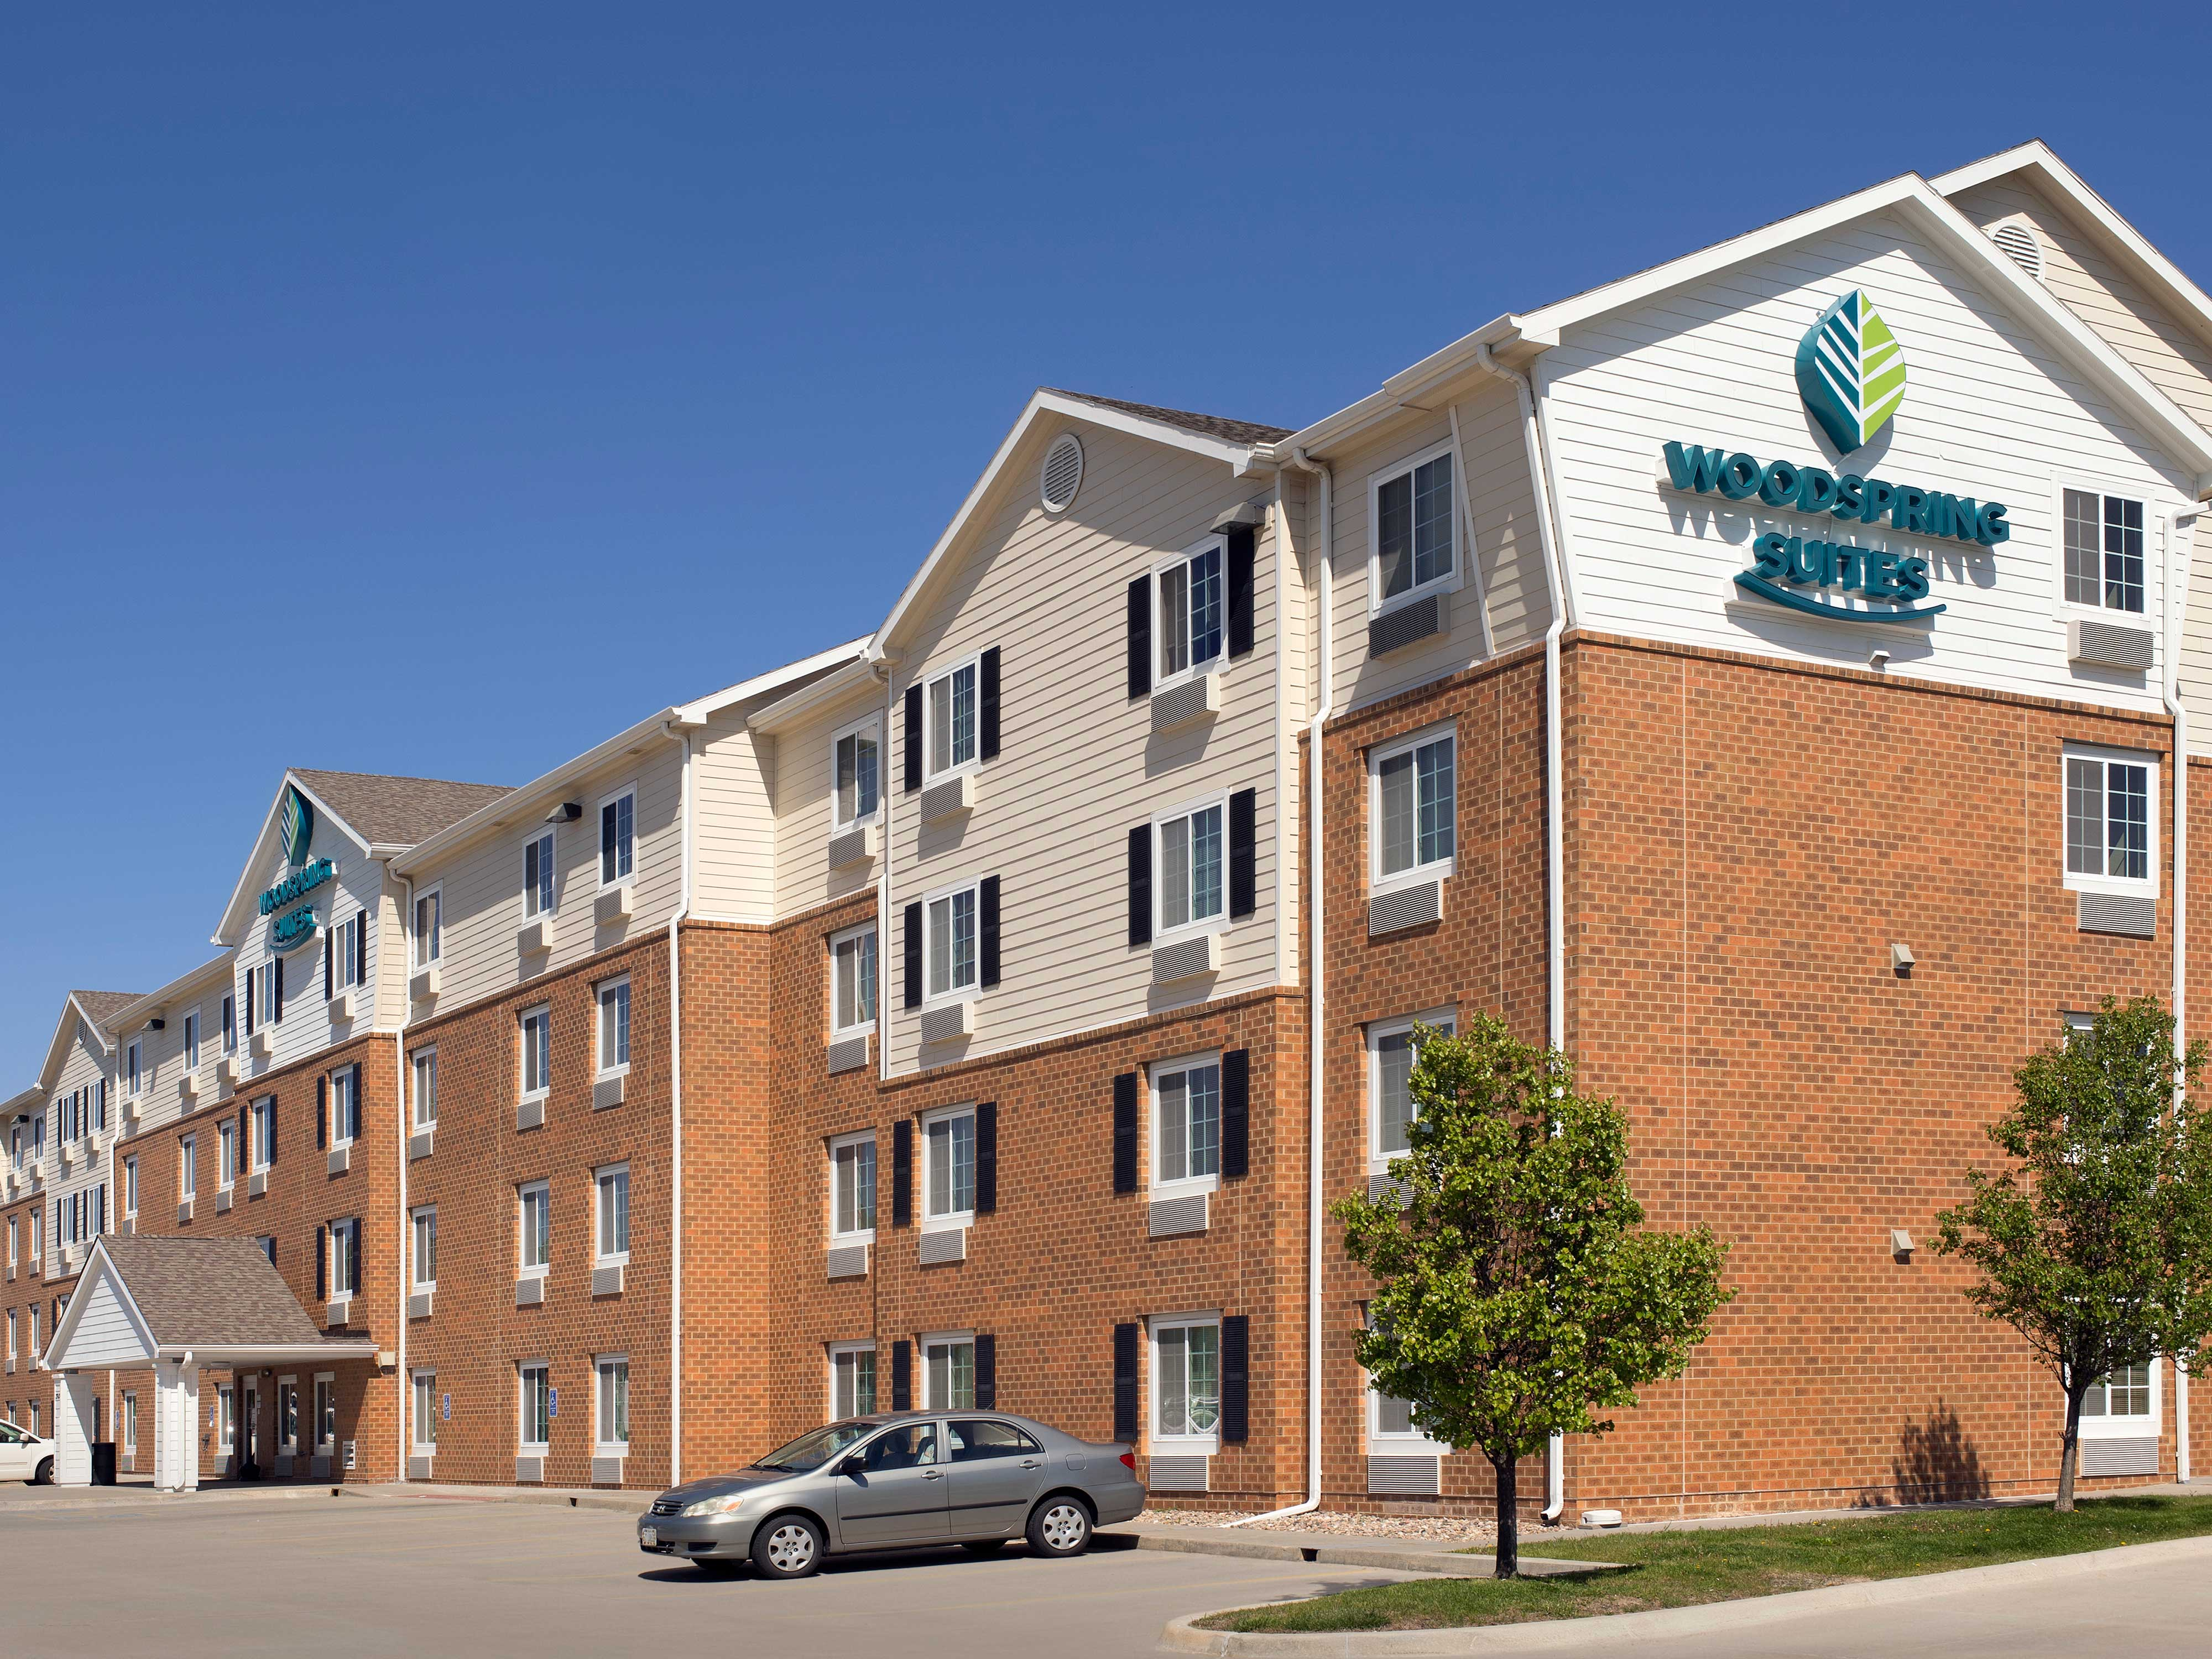 WoodSpring Suites Omaha Bellevue image 15